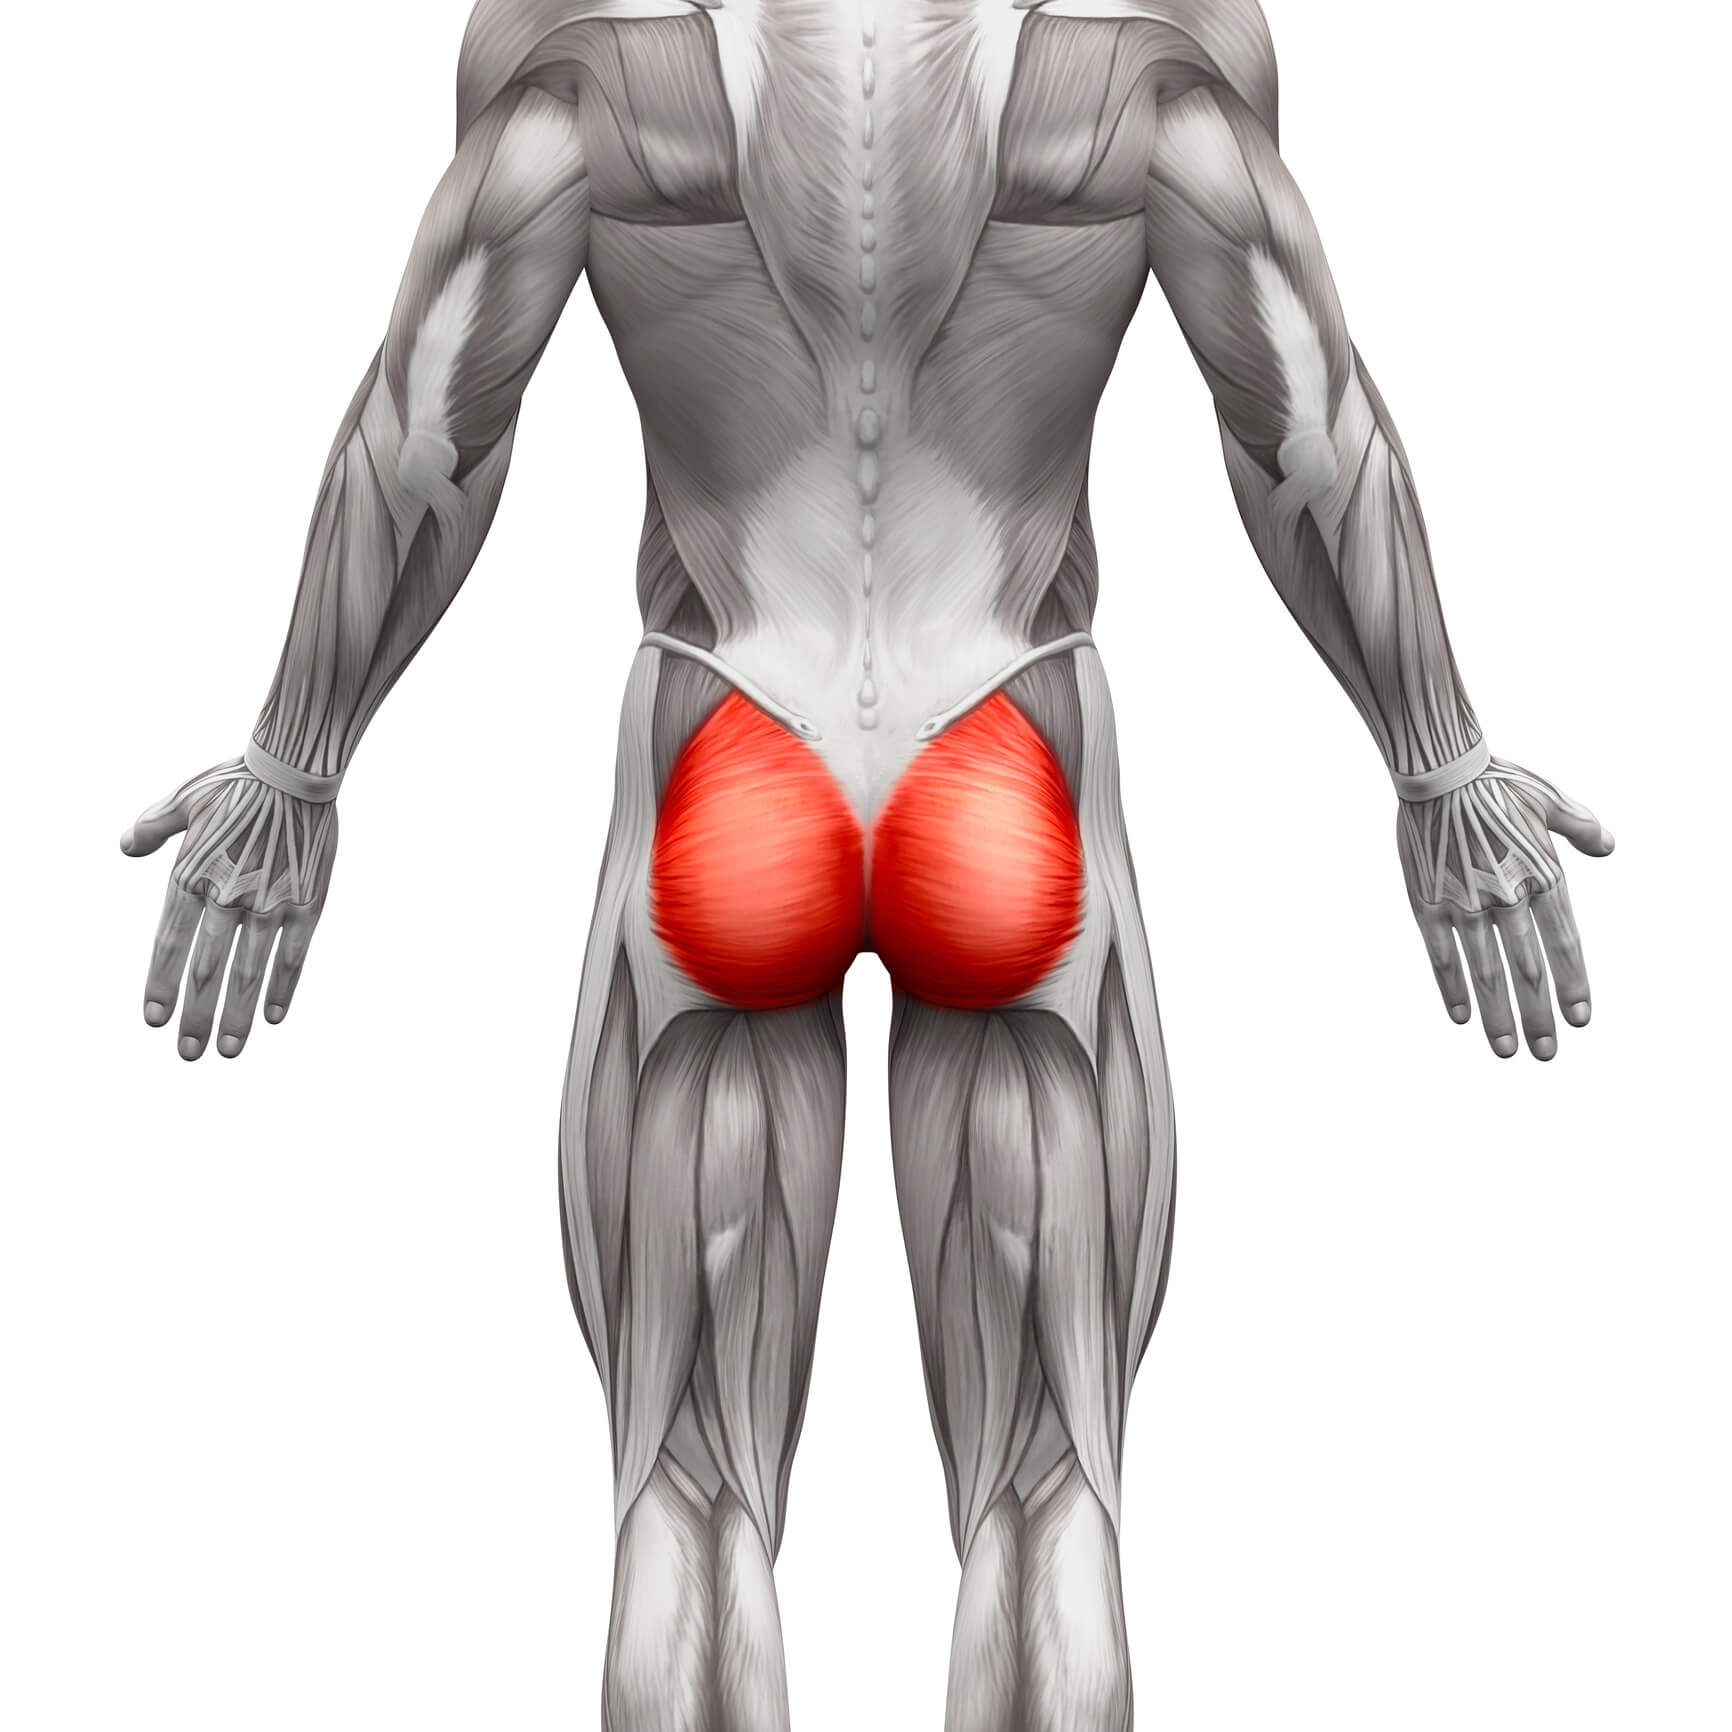 Butt Exercises: Train your glutes to prevent injury and improve ...